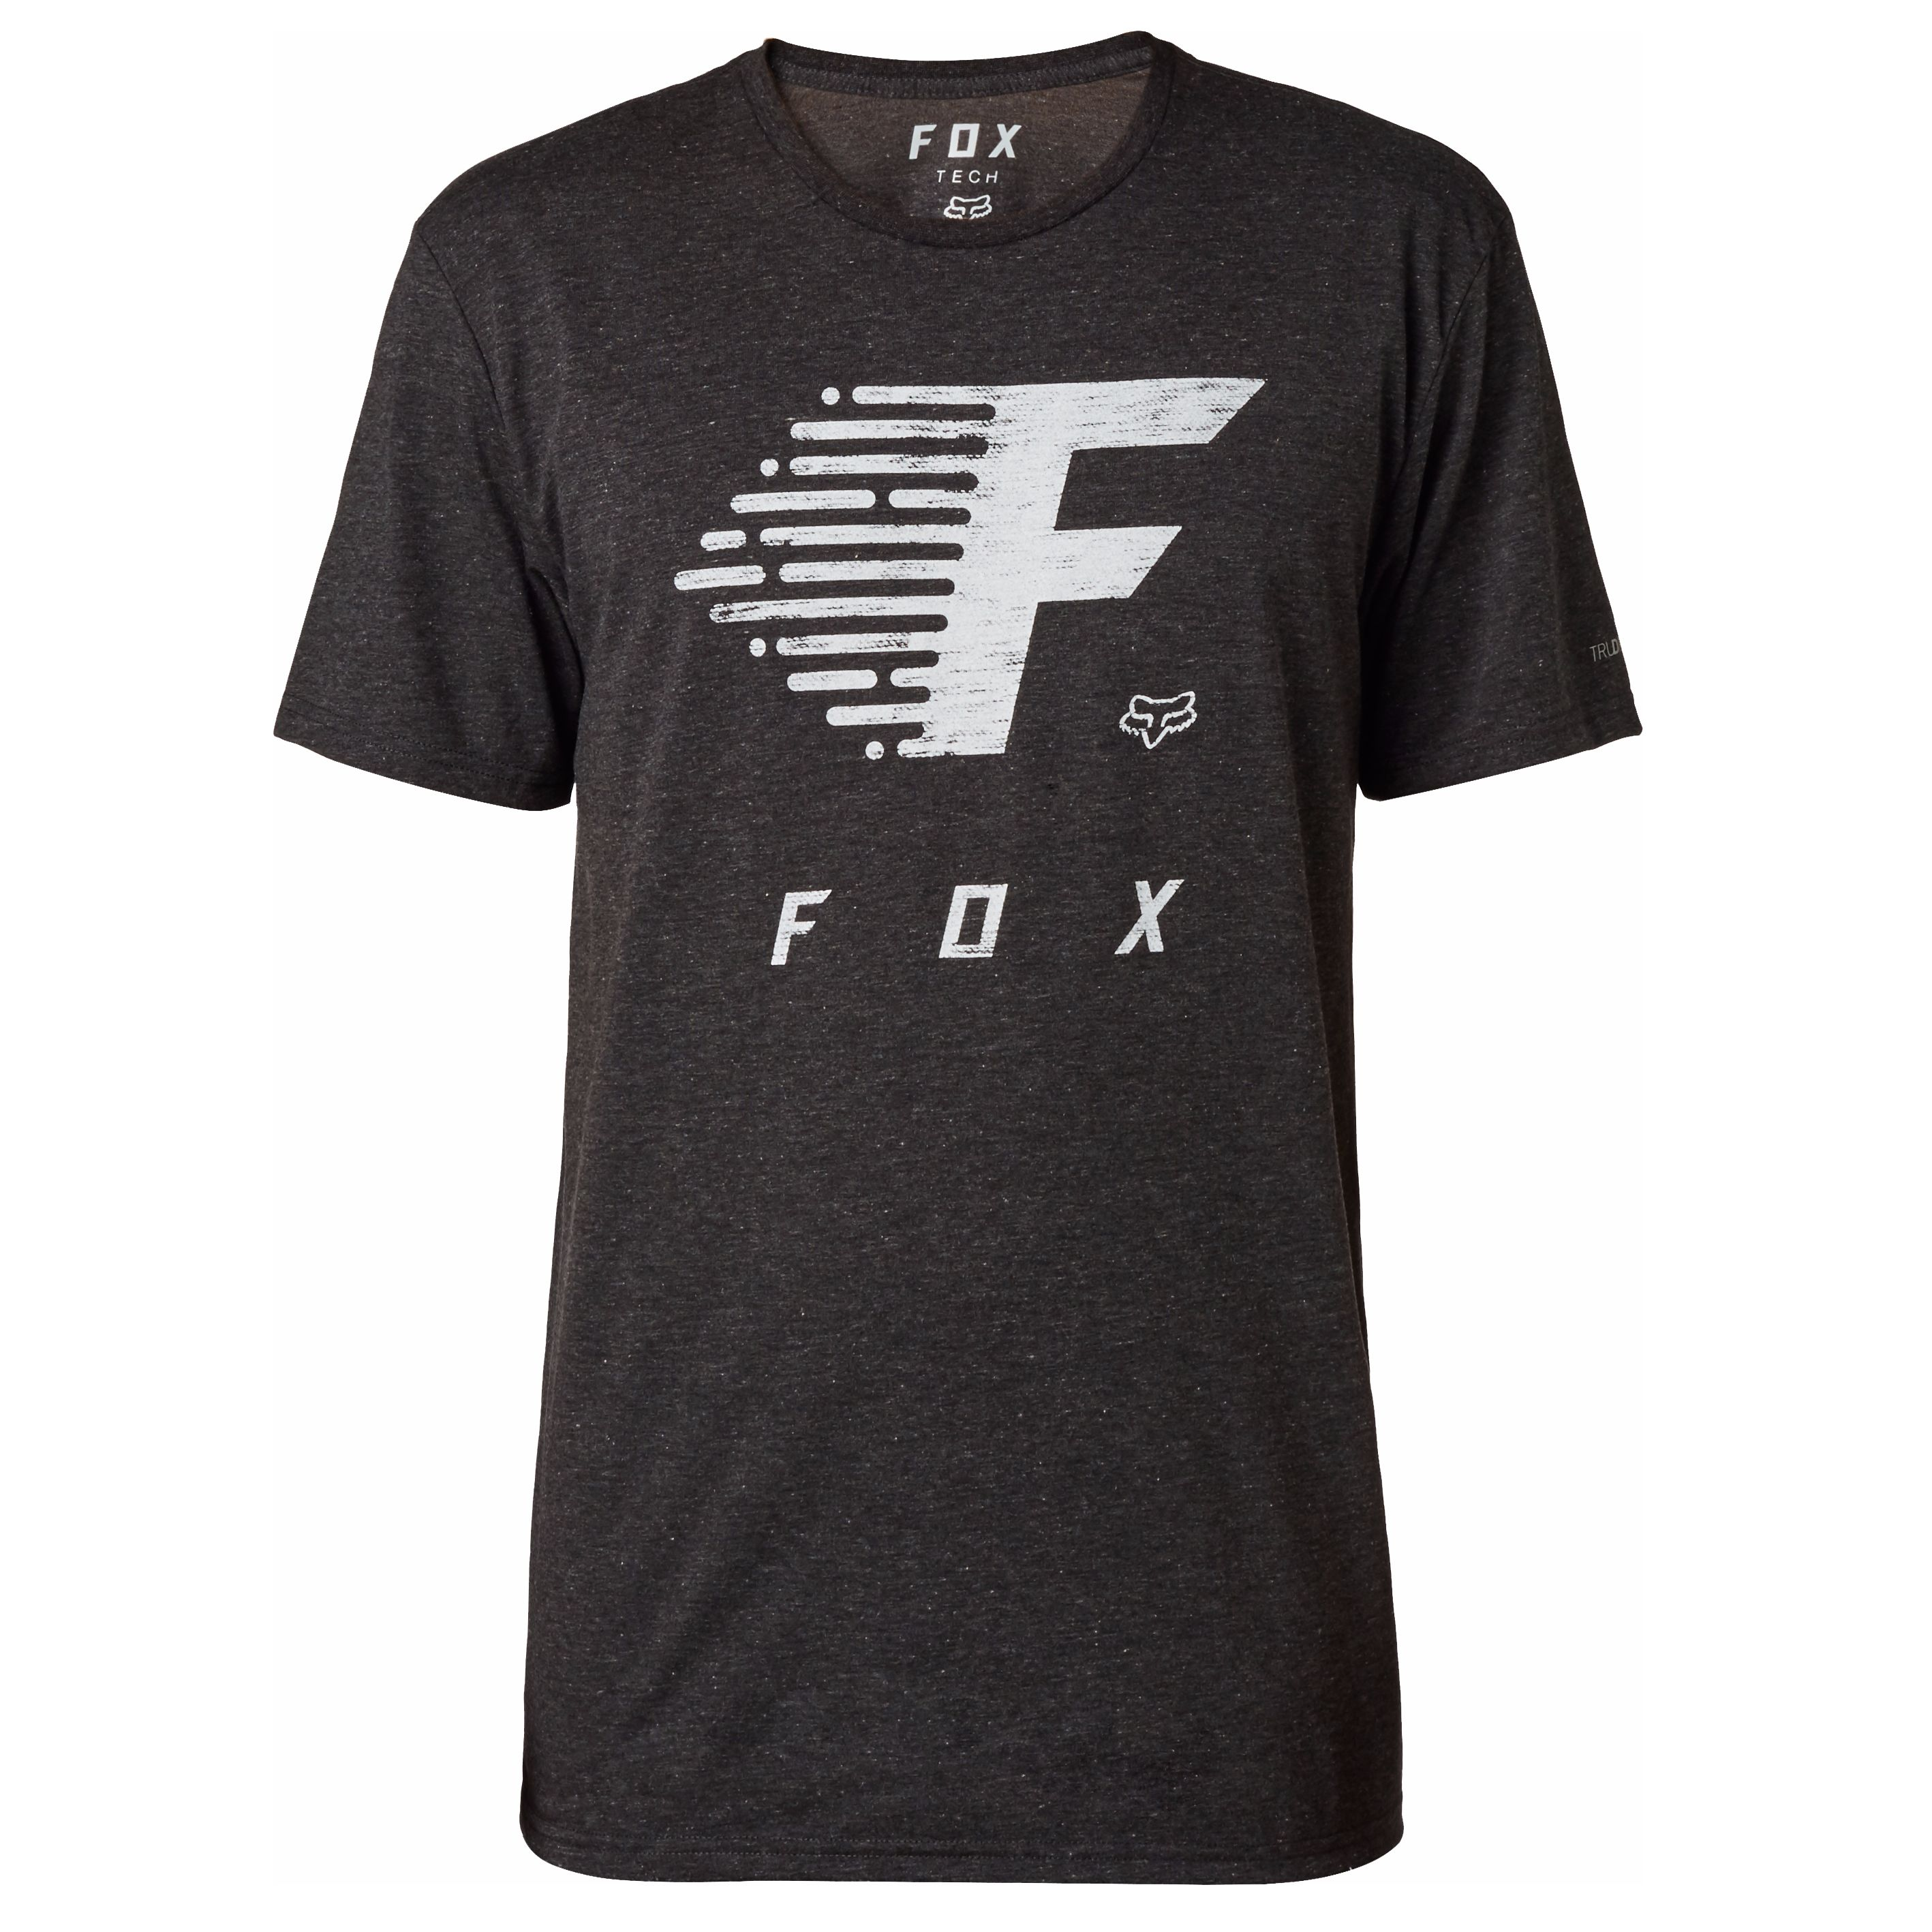 T-shirt Manches Courtes Fox Fade To Track - 2018